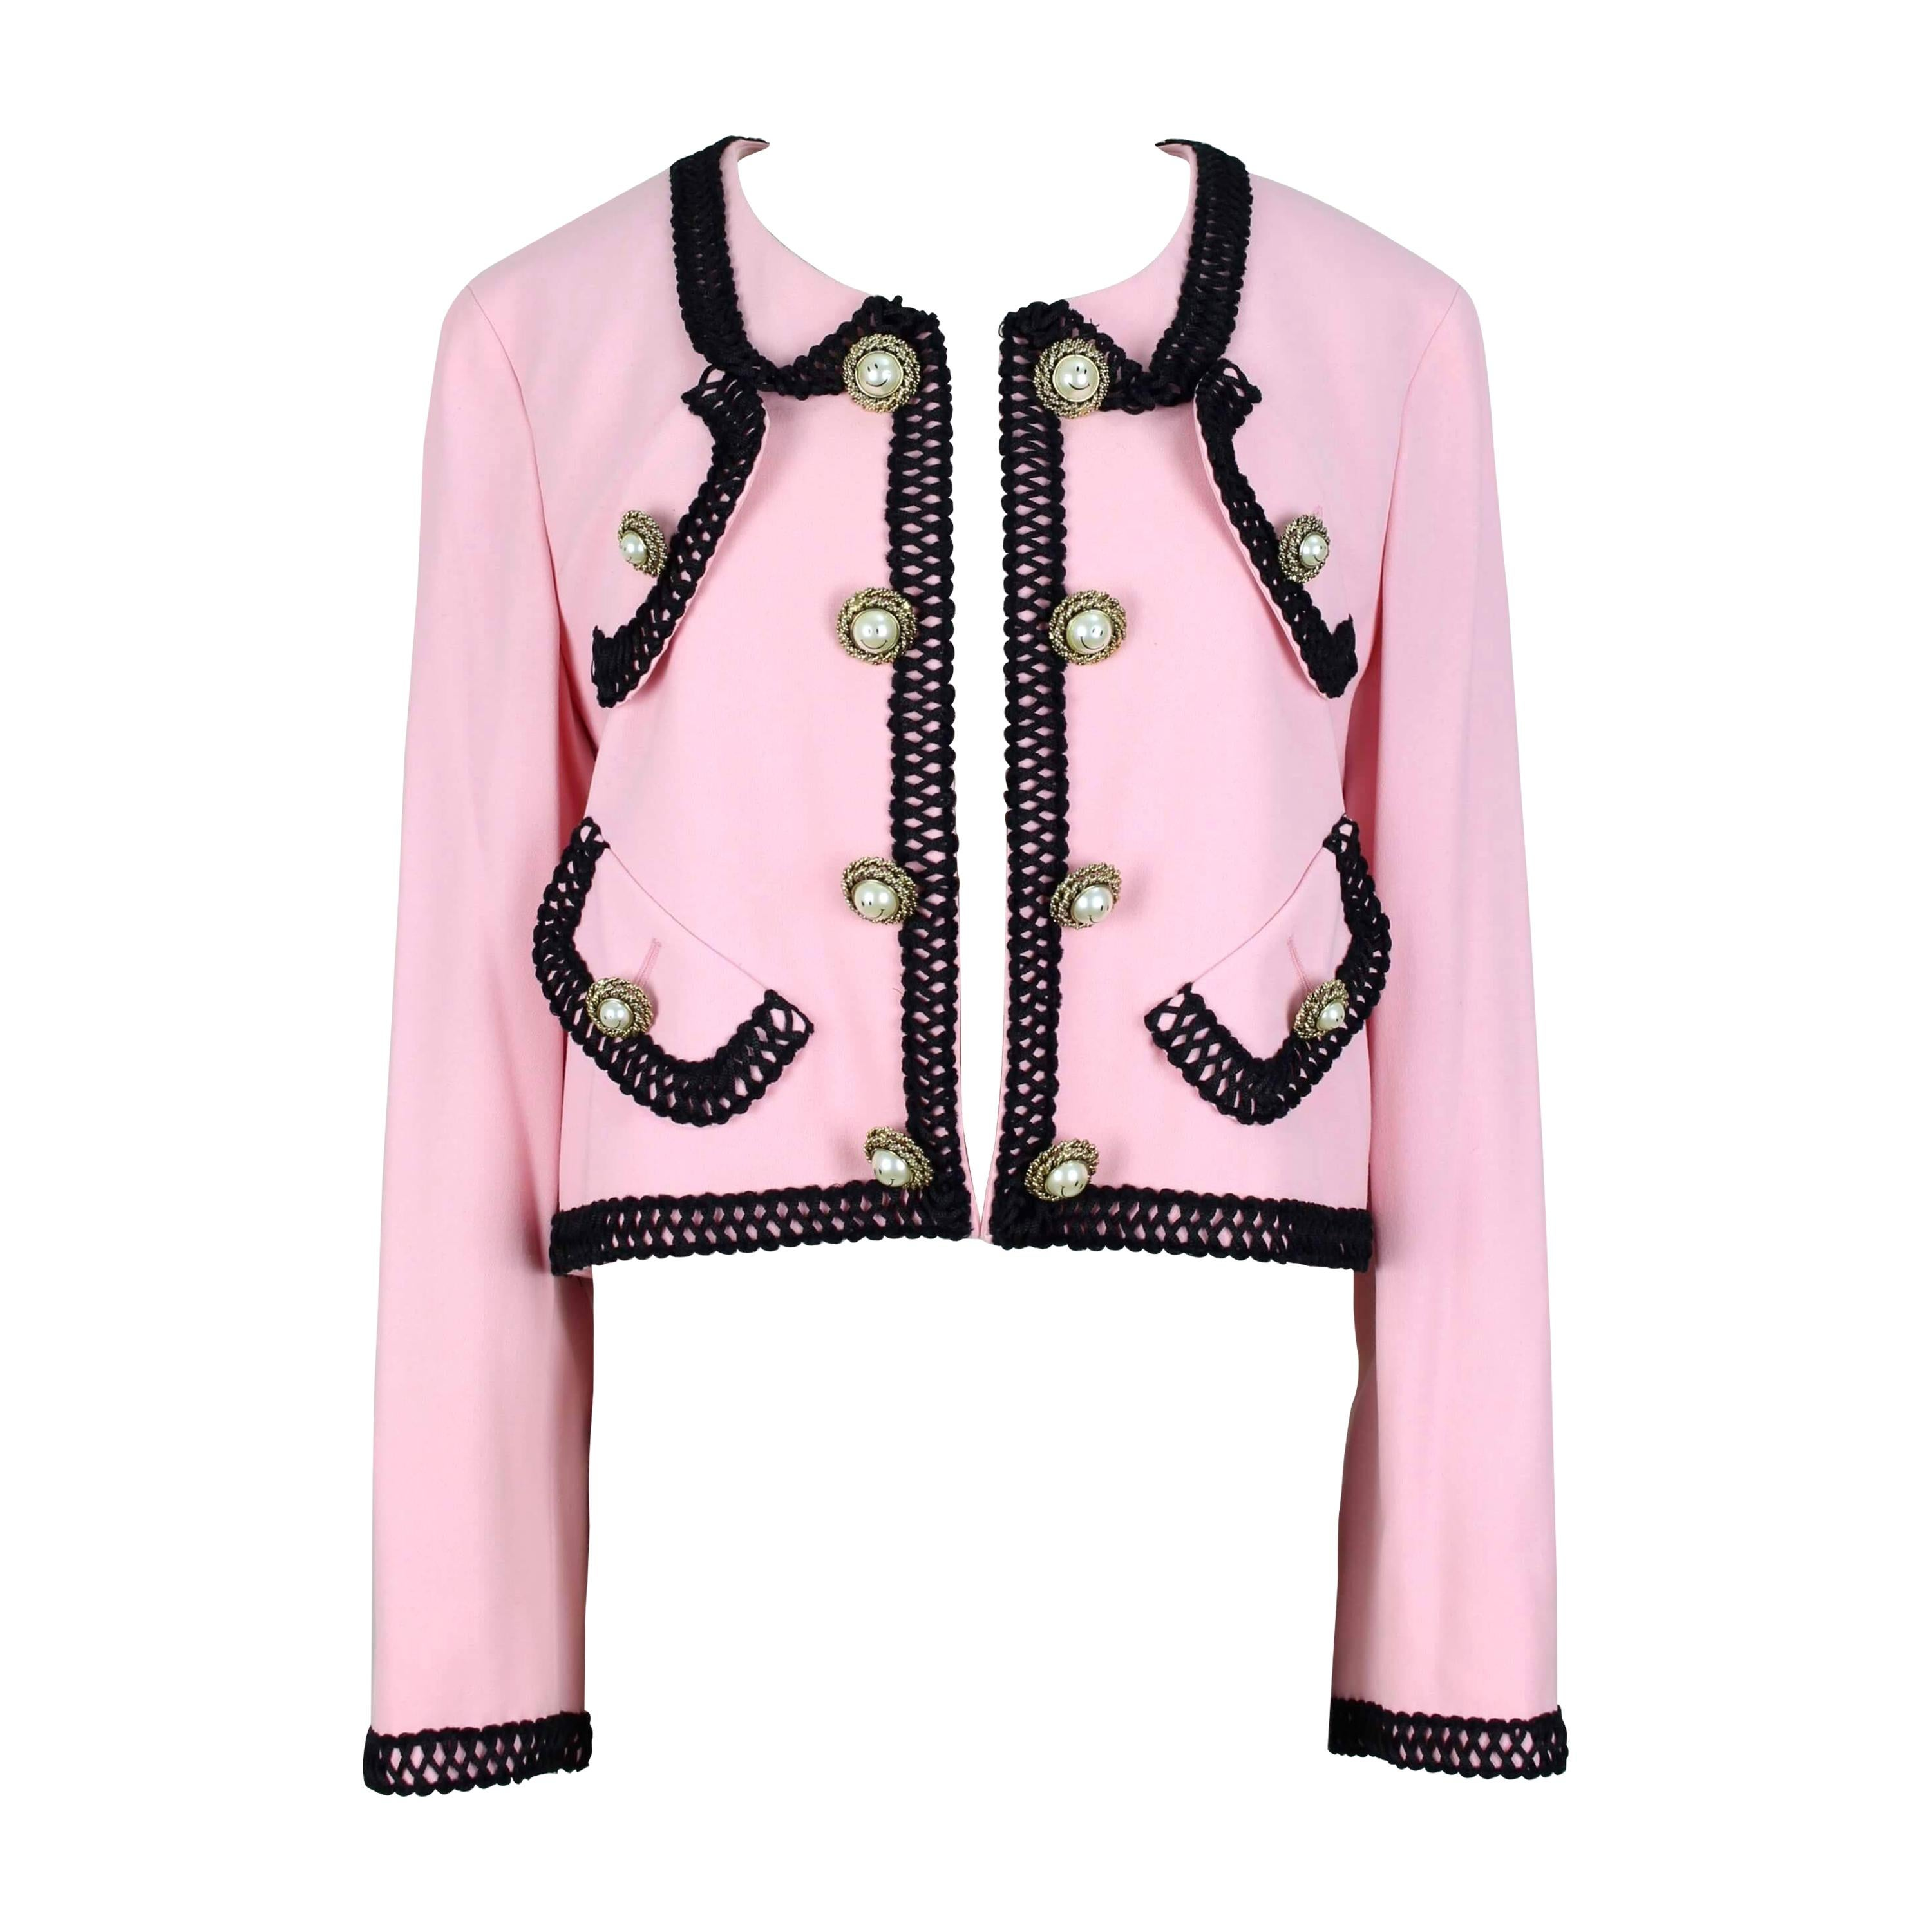 MOSCHINO COUTURE! Pink Wool Smiley Face Buttons Chanel Inspired Jacket, c. 1992